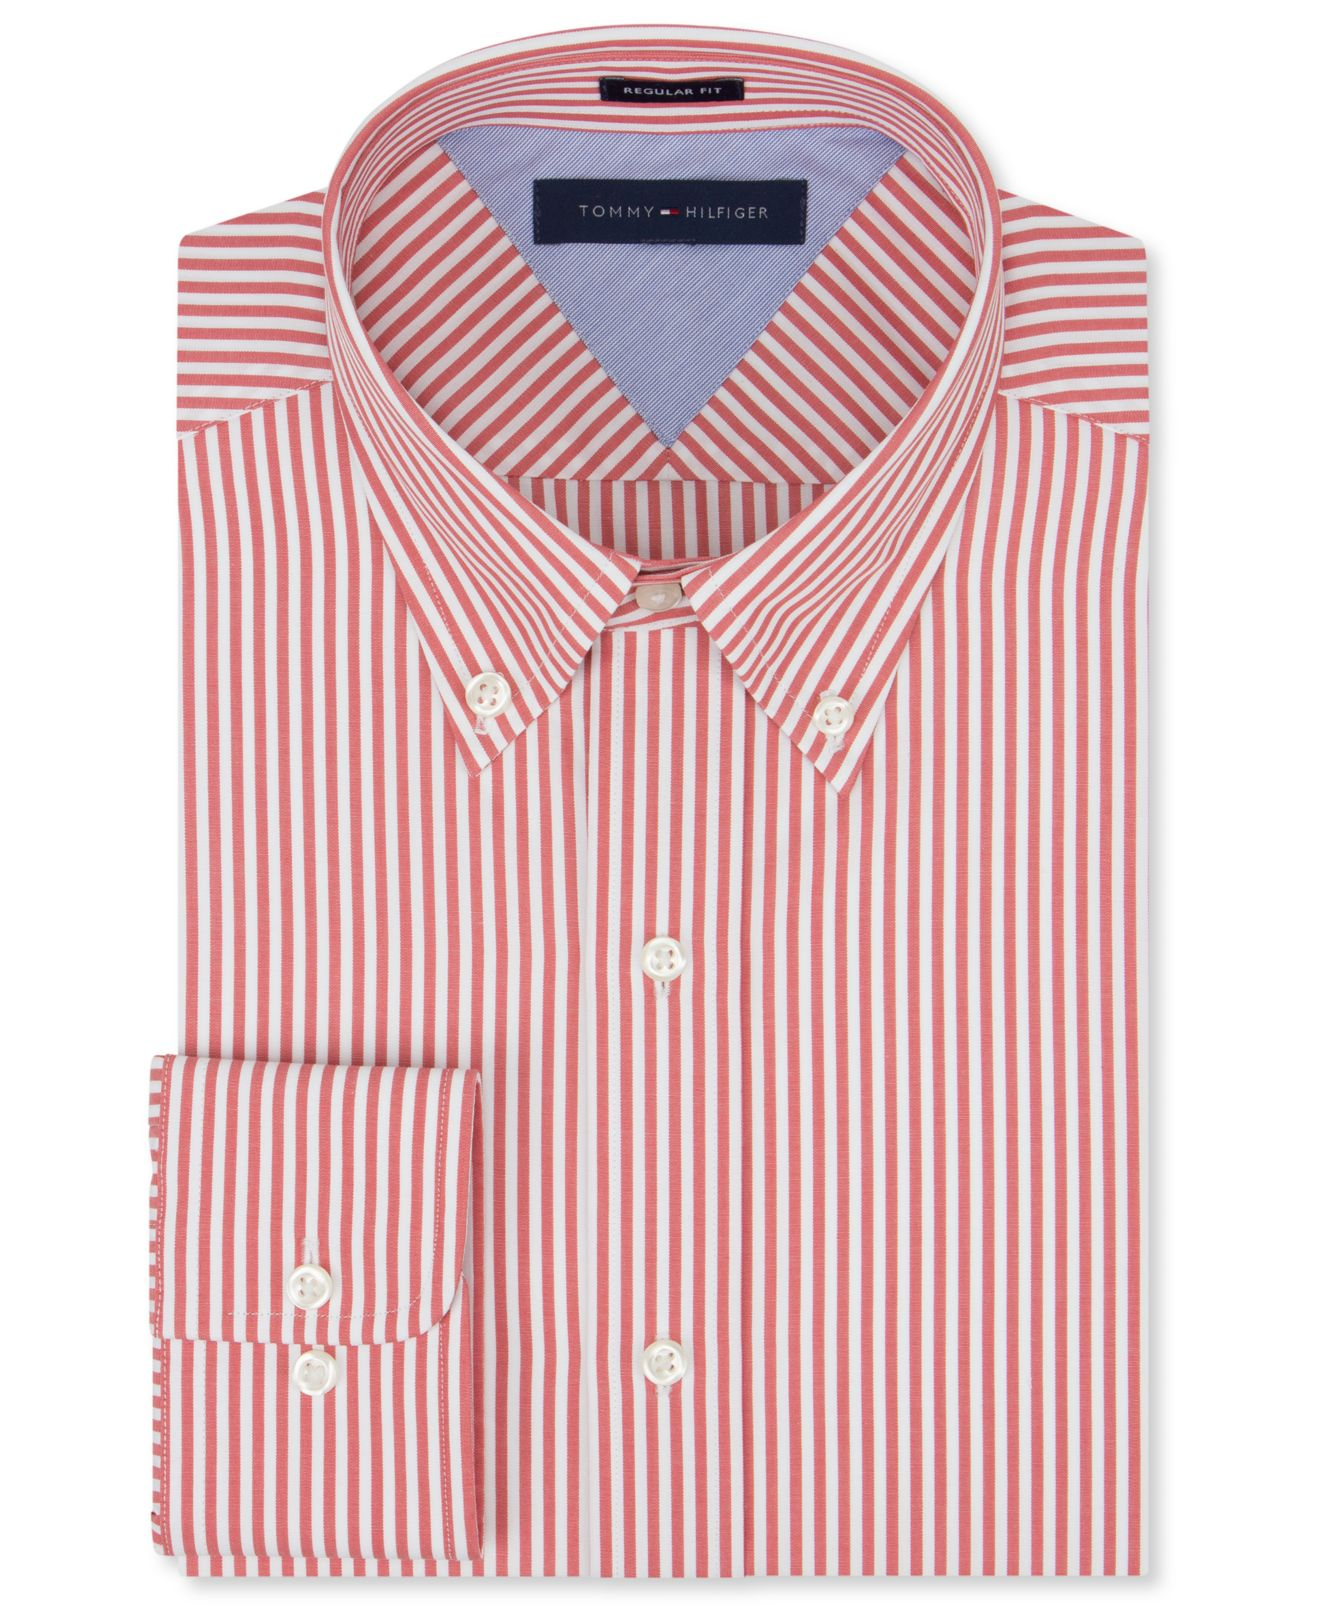 Lyst tommy hilfiger red bengal stripe dress shirt in red for Mens red and white striped dress shirt